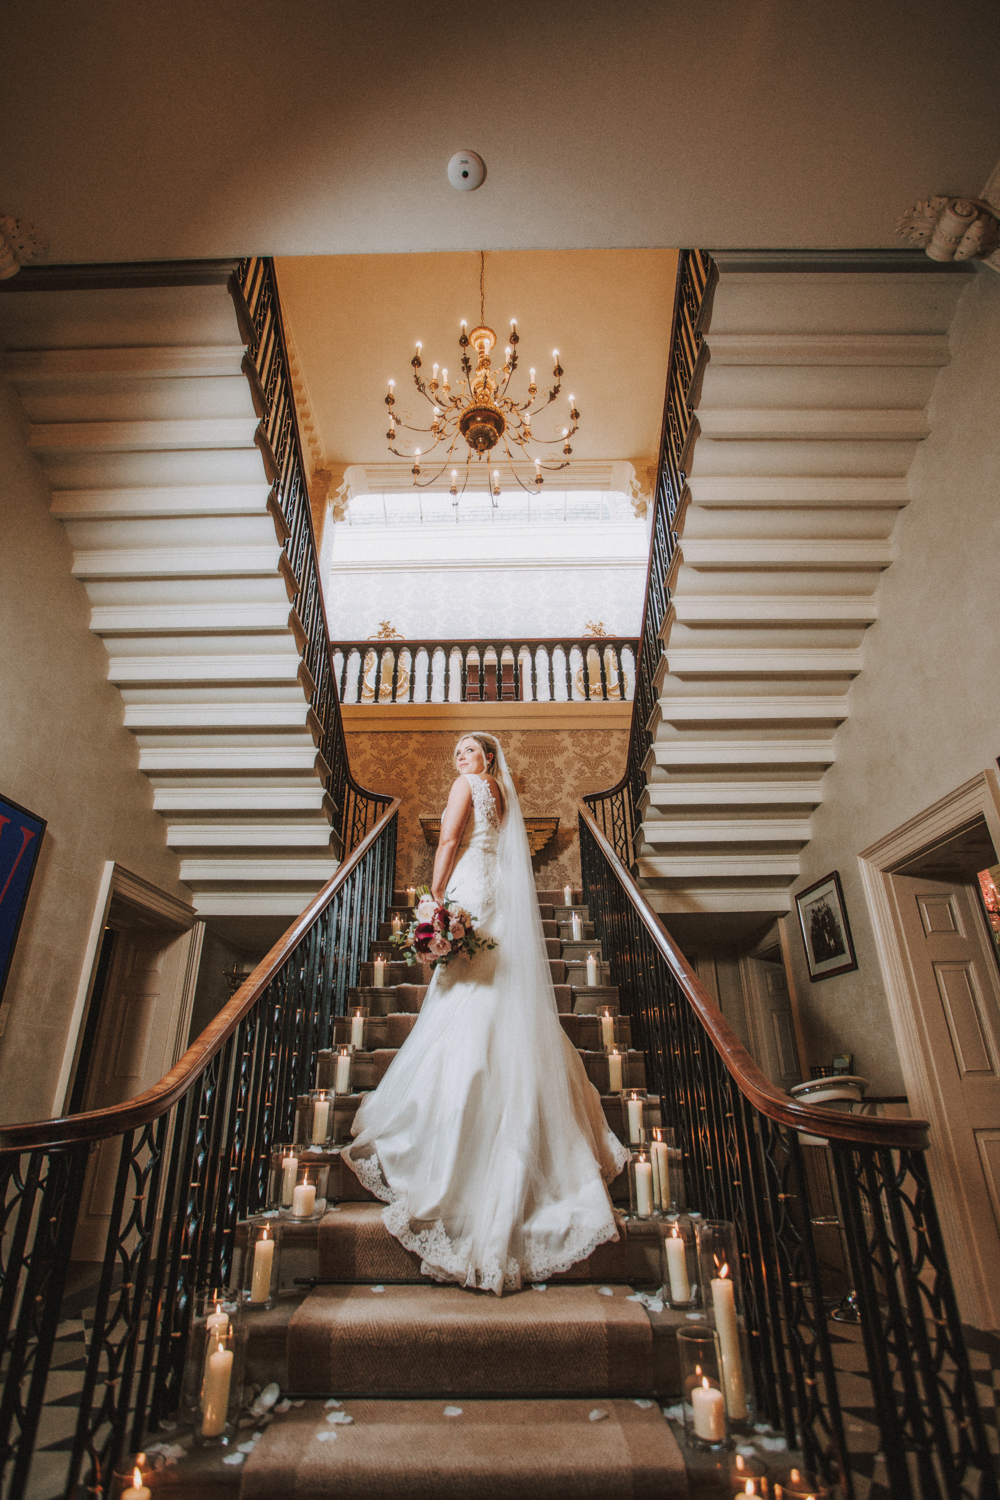 bowcliffe hall, wetherby, yorkshire wedding photography19.jpg